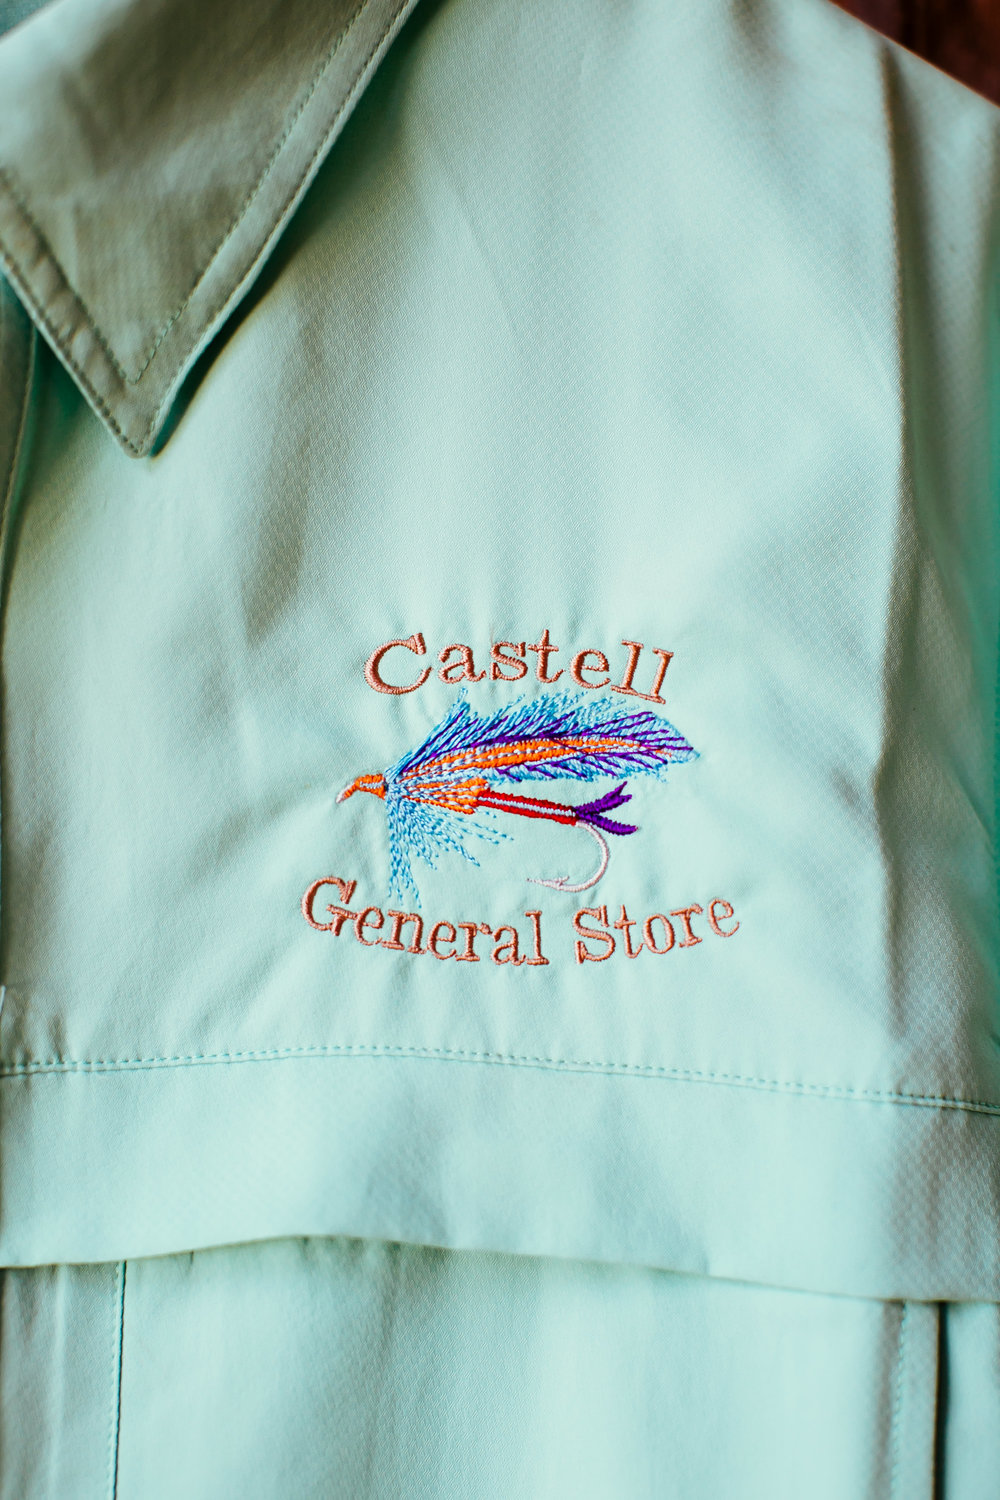 Variety of Castell General Store Shirts